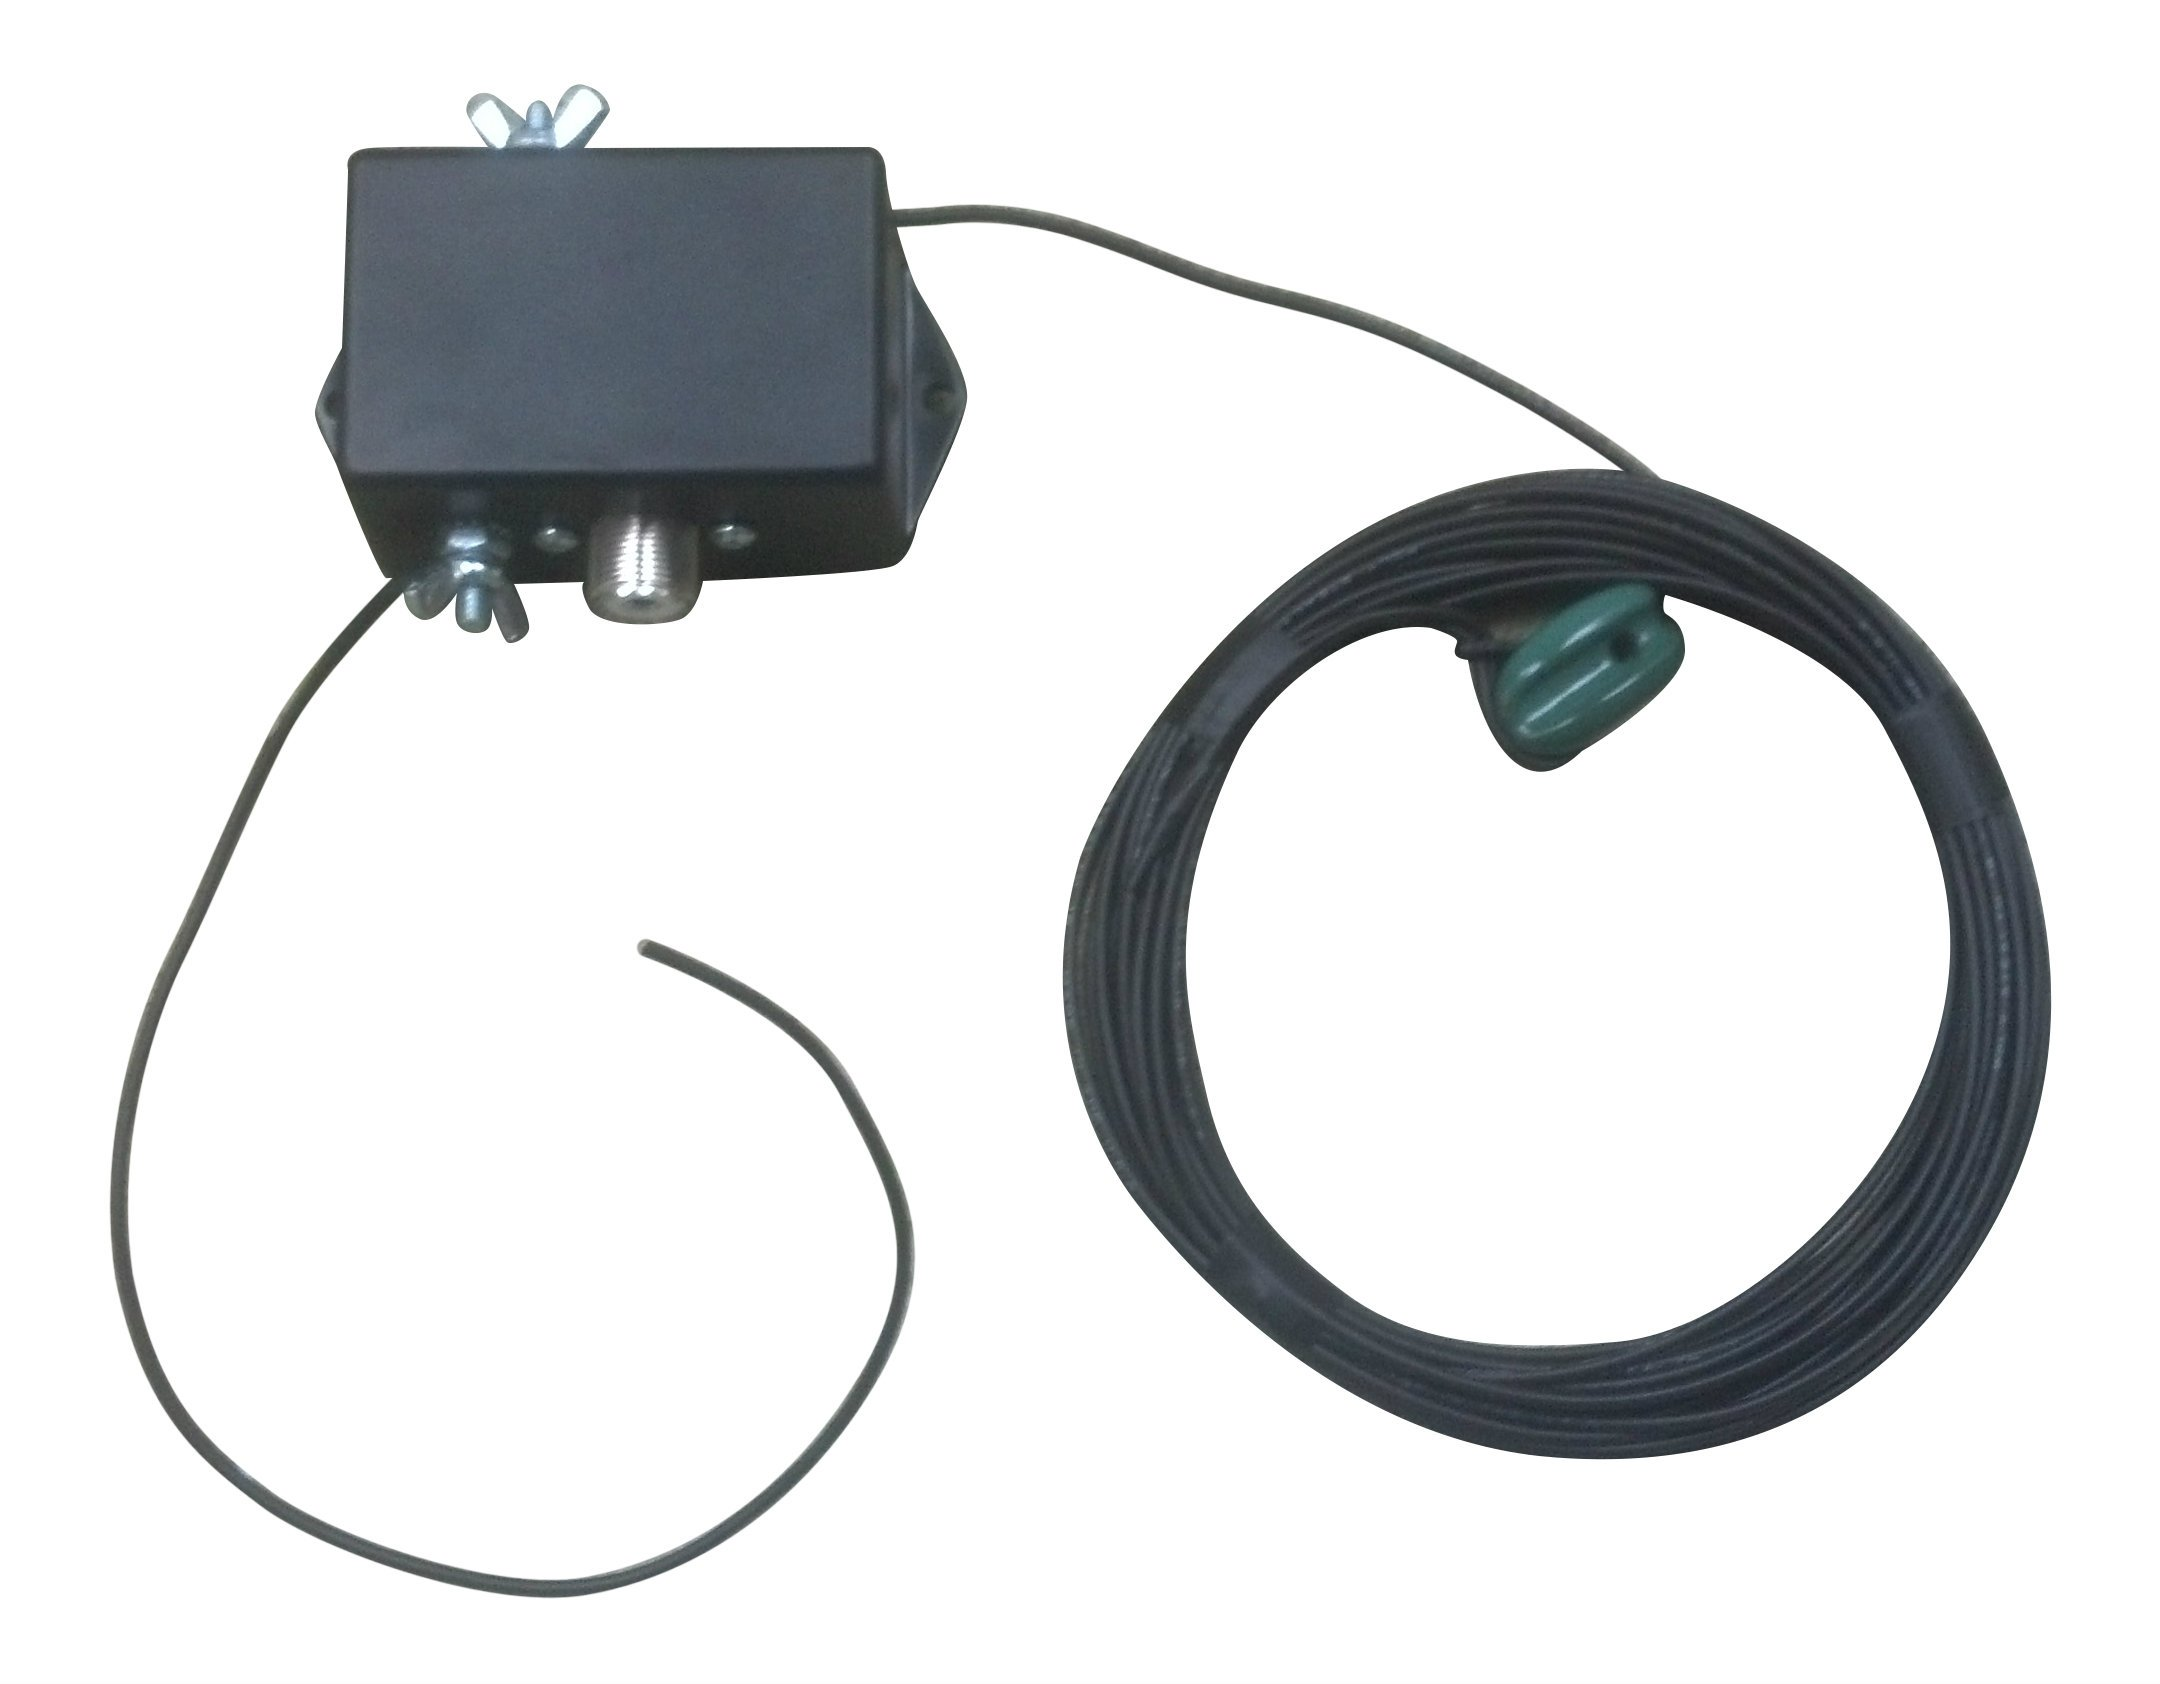 Portable End-Fed 40-6 Meters Poly-Stealth Dipole Antenna